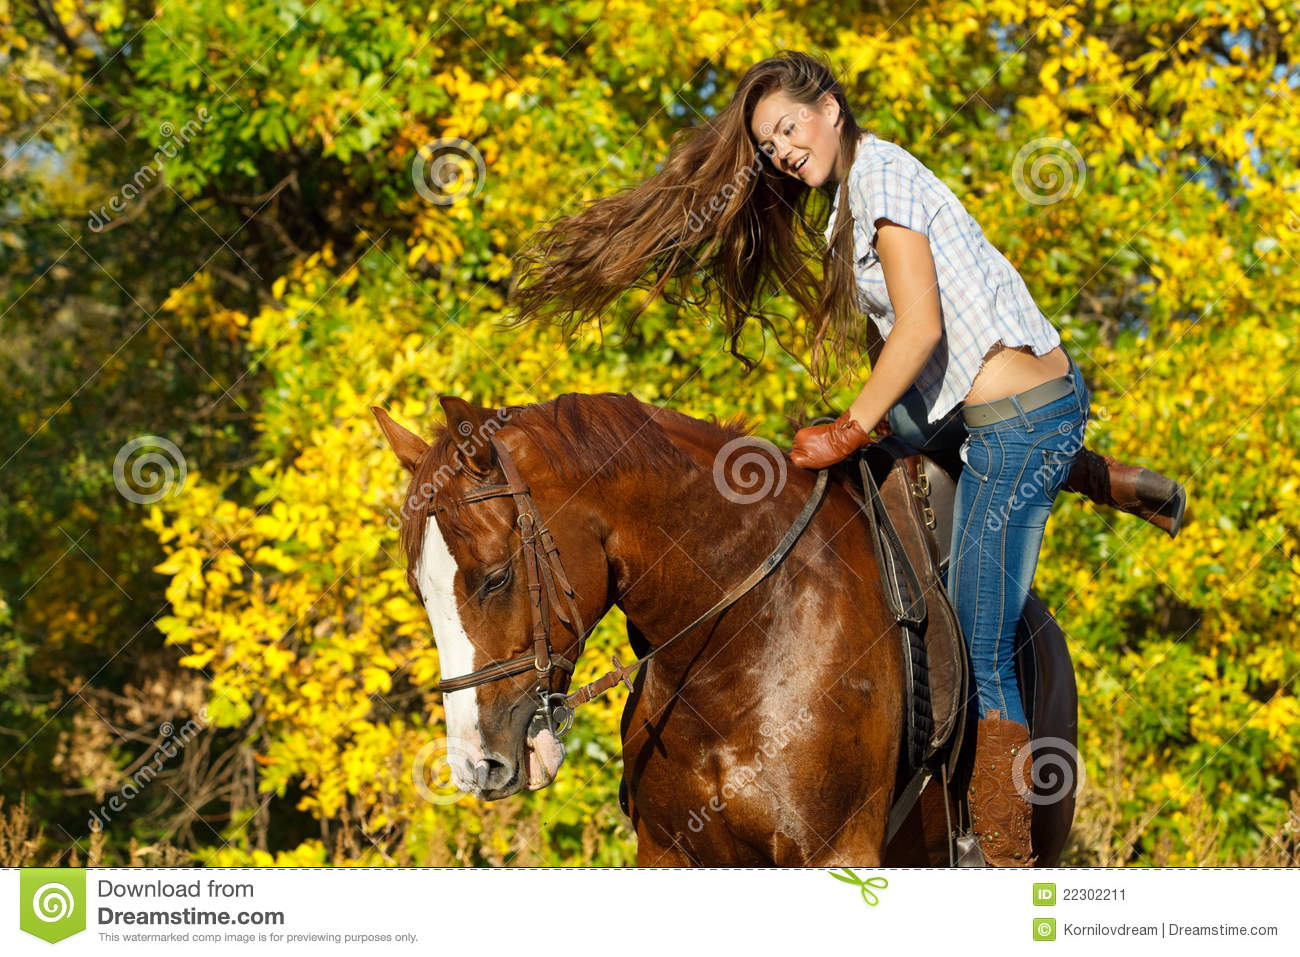 Girl Riding A Horse Stock Image - Image: 22302211